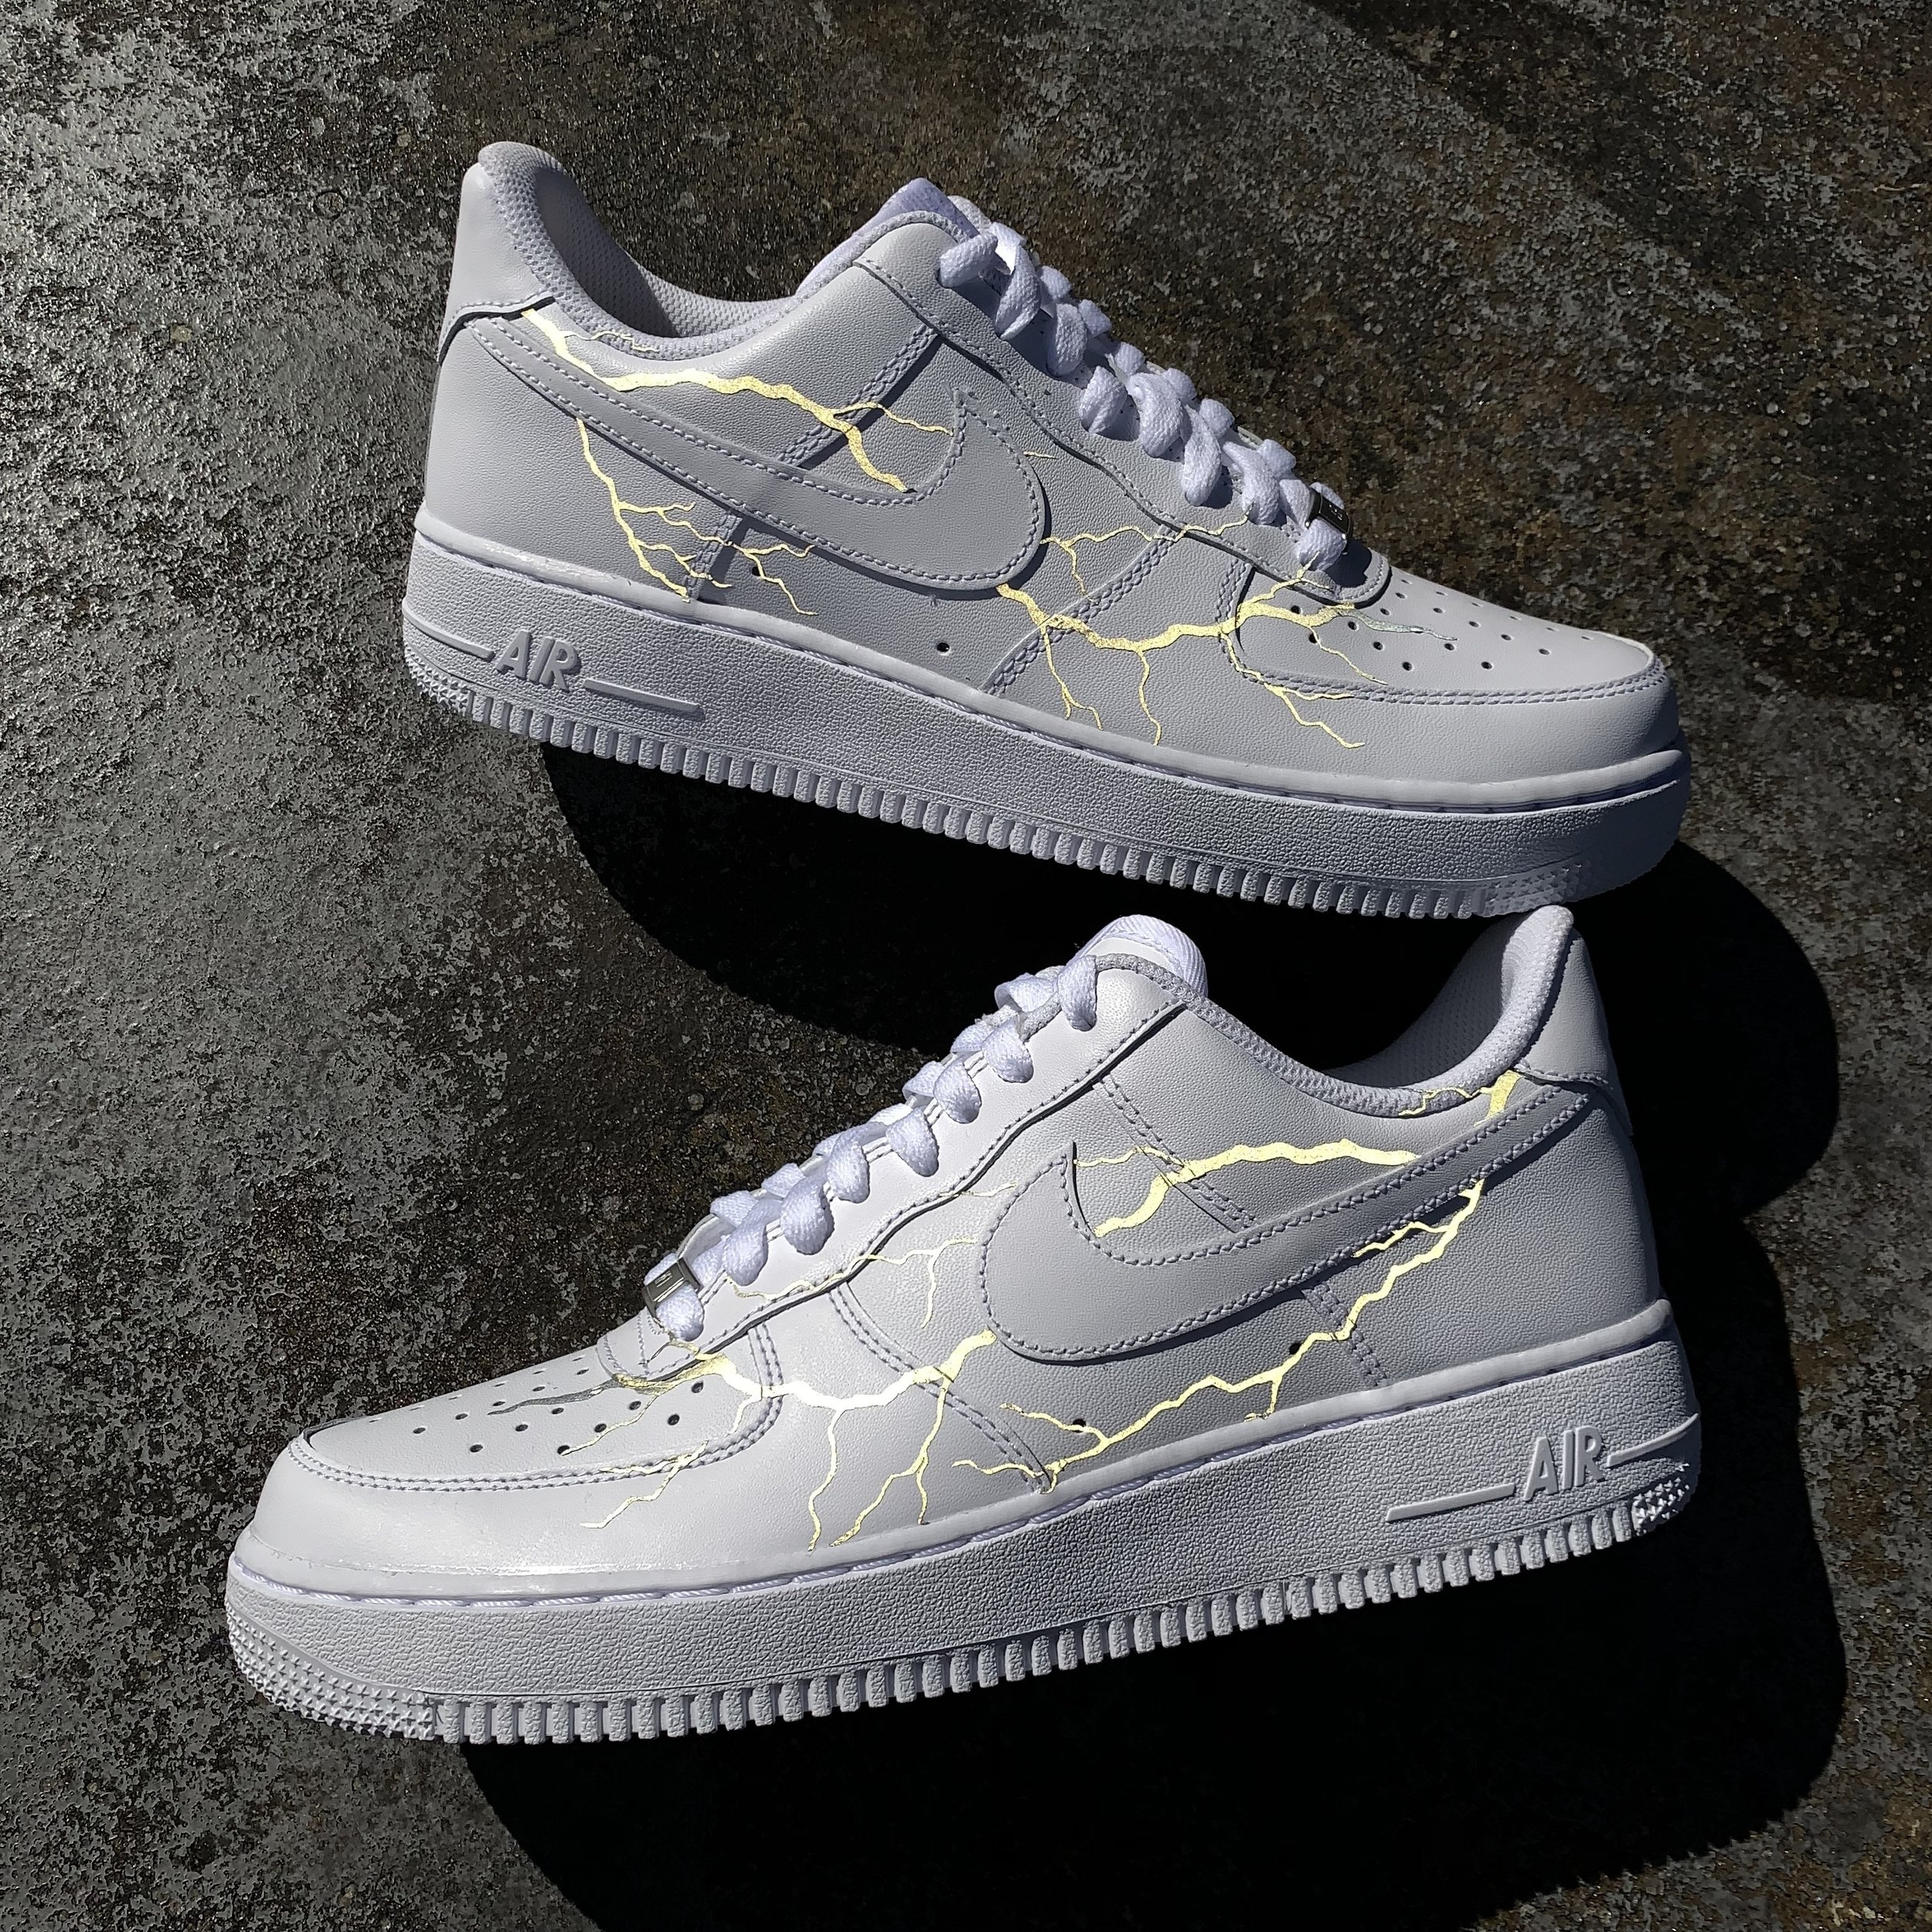 3m Lightning Air Force 1 Custom Vintagewavez